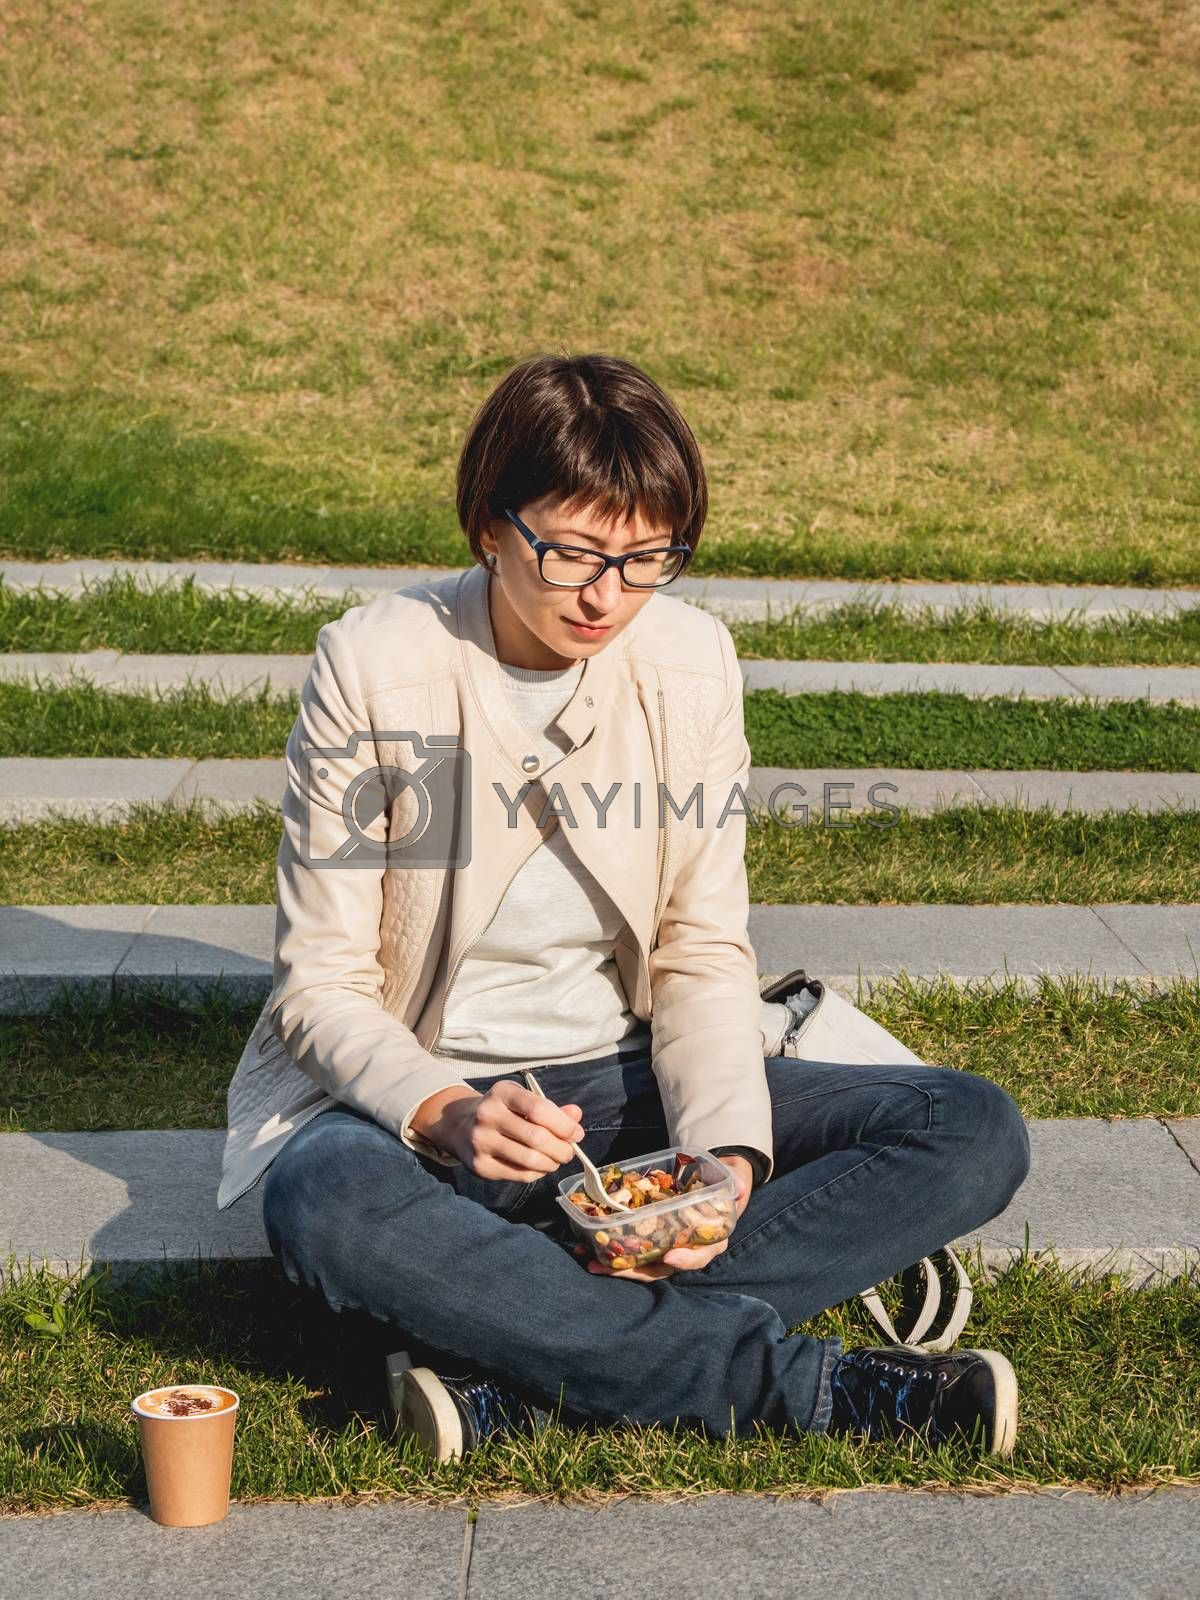 Woman sits on park bench with take away lunch box, cardboard cup of coffee. Healthy bowl with vegetables. Casual clothes, urban lifestyle of millennials. Healthy nutrition.